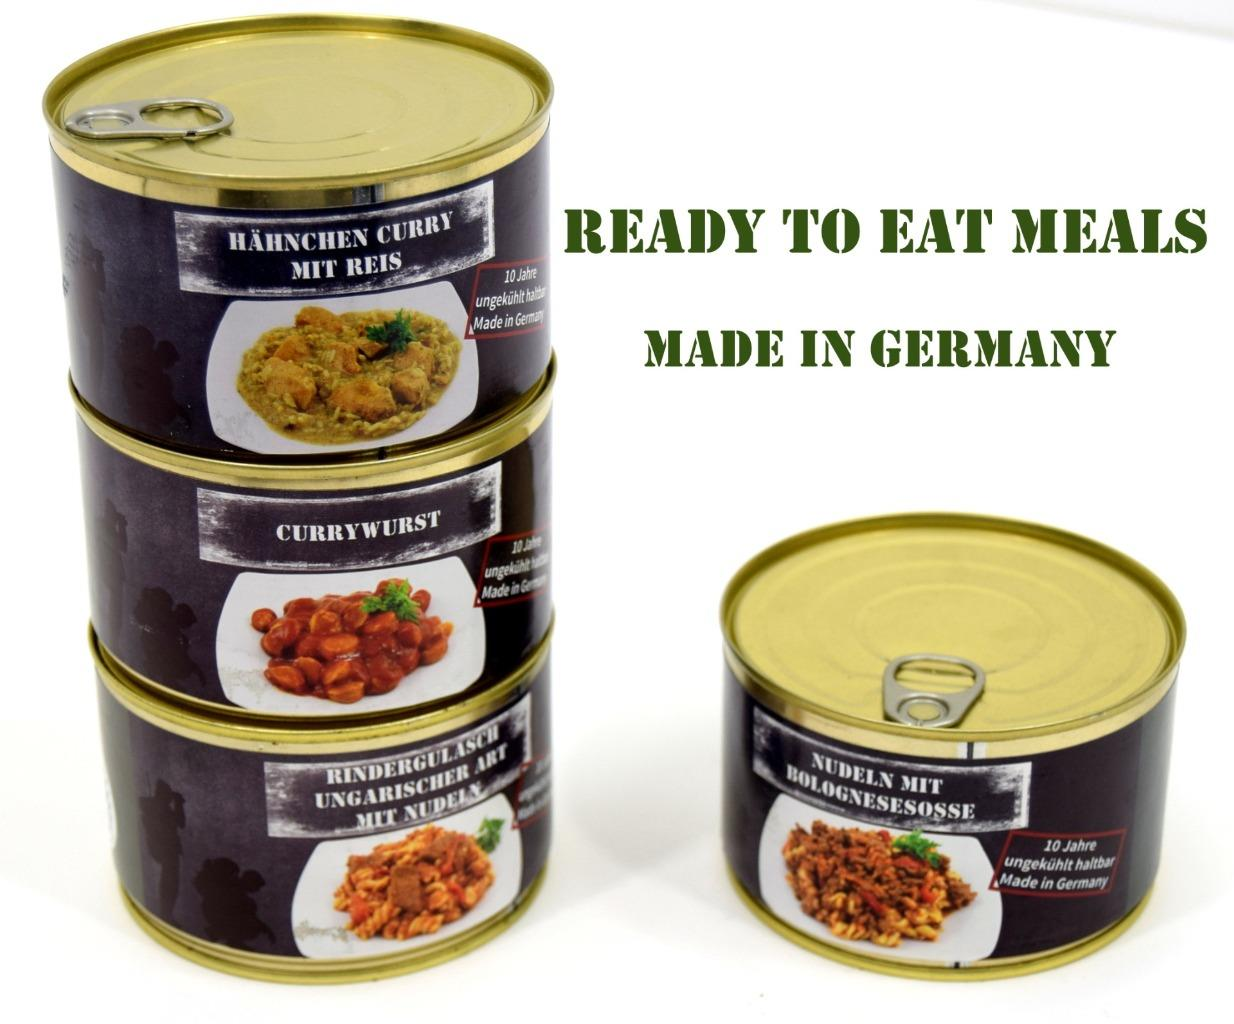 British Army MOD Ration Pack Meals MRE Camping Food Survival Fishing Scouts DofE